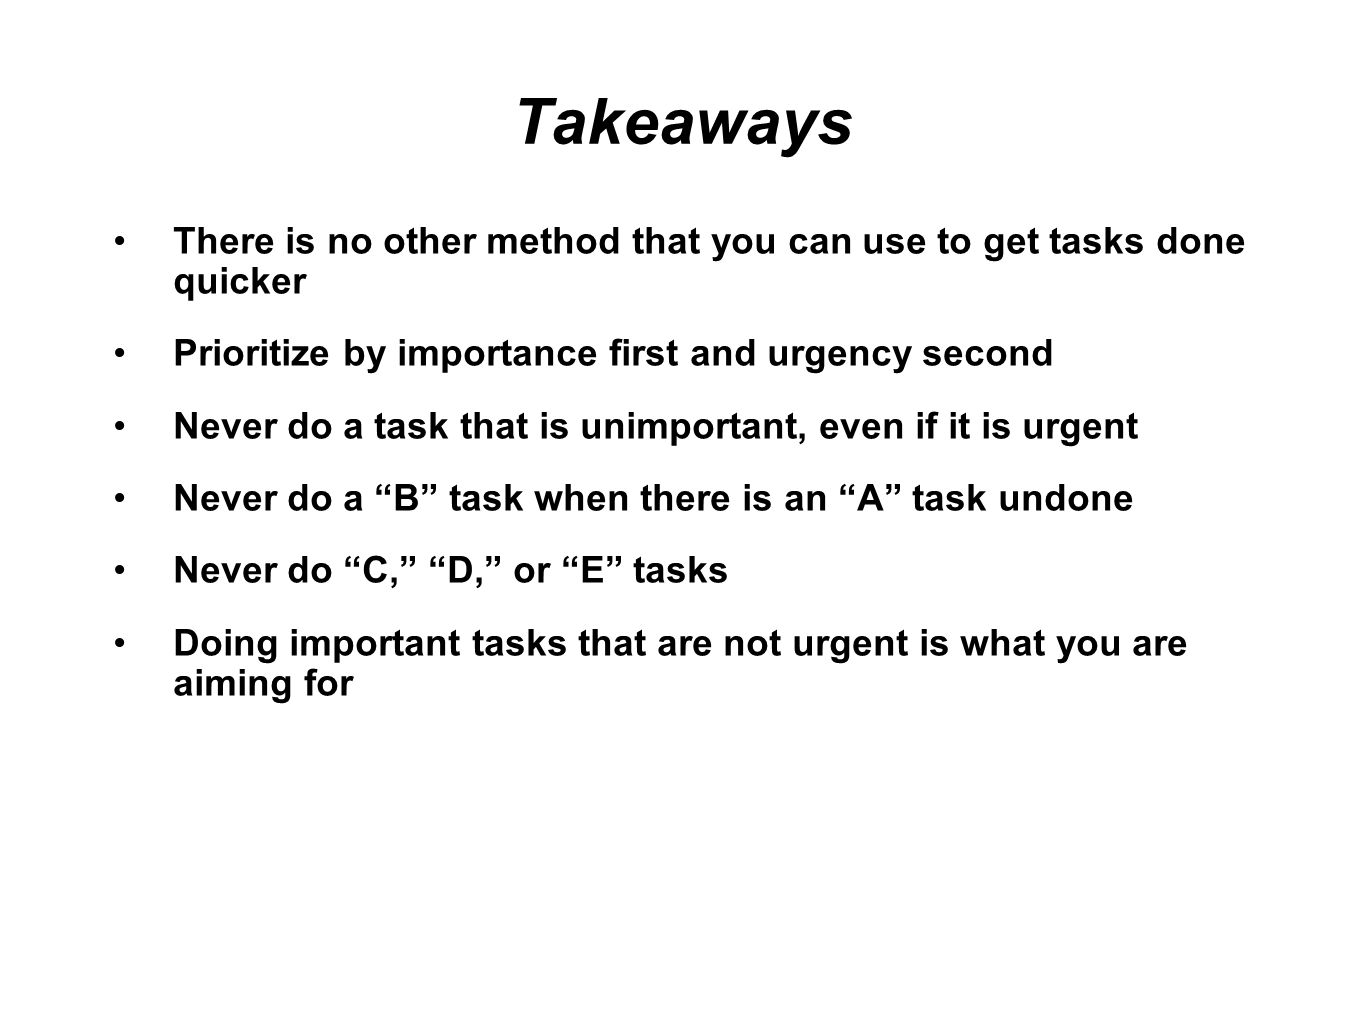 Takeaways There is no other method that you can use to get tasks done quicker Prioritize by importance first and urgency second Never do a task that is unimportant, even if it is urgent Never do a B task when there is an A task undone Never do C, D, or E tasks Doing important tasks that are not urgent is what you are aiming for